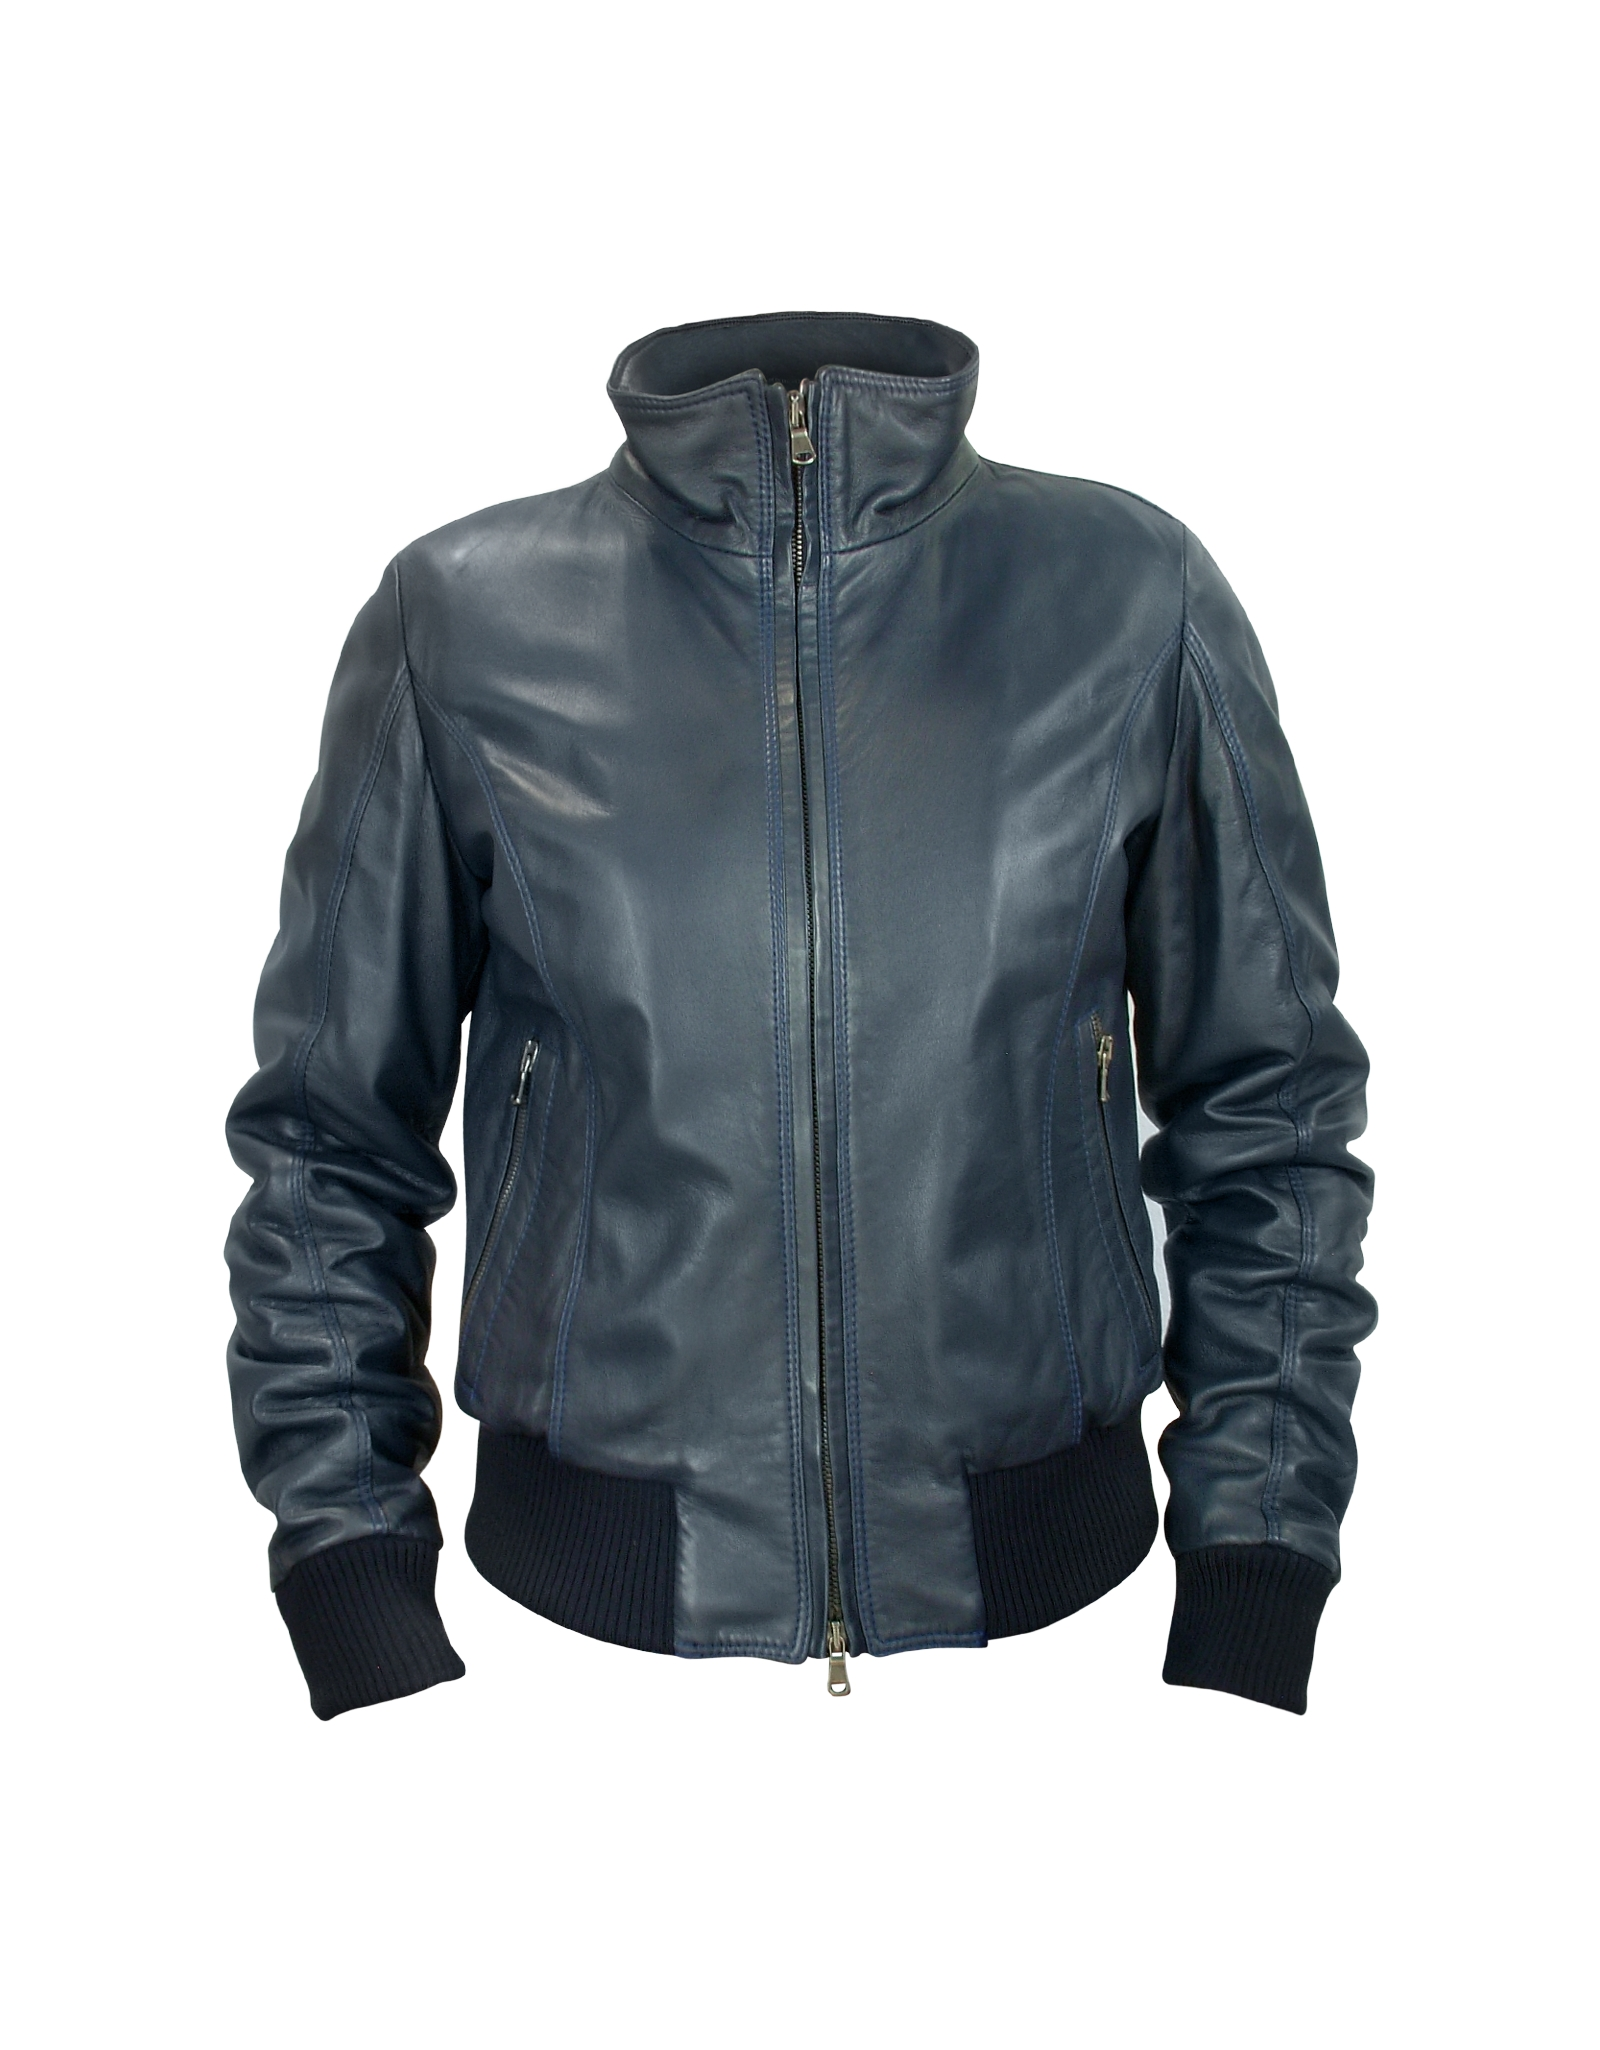 You searched for: blue leather jacket! Etsy is the home to thousands of handmade, vintage, and one-of-a-kind products and gifts related to your search. No matter what you're looking for or where you are in the world, our global marketplace of sellers can help you find unique and affordable options. Let's get started!